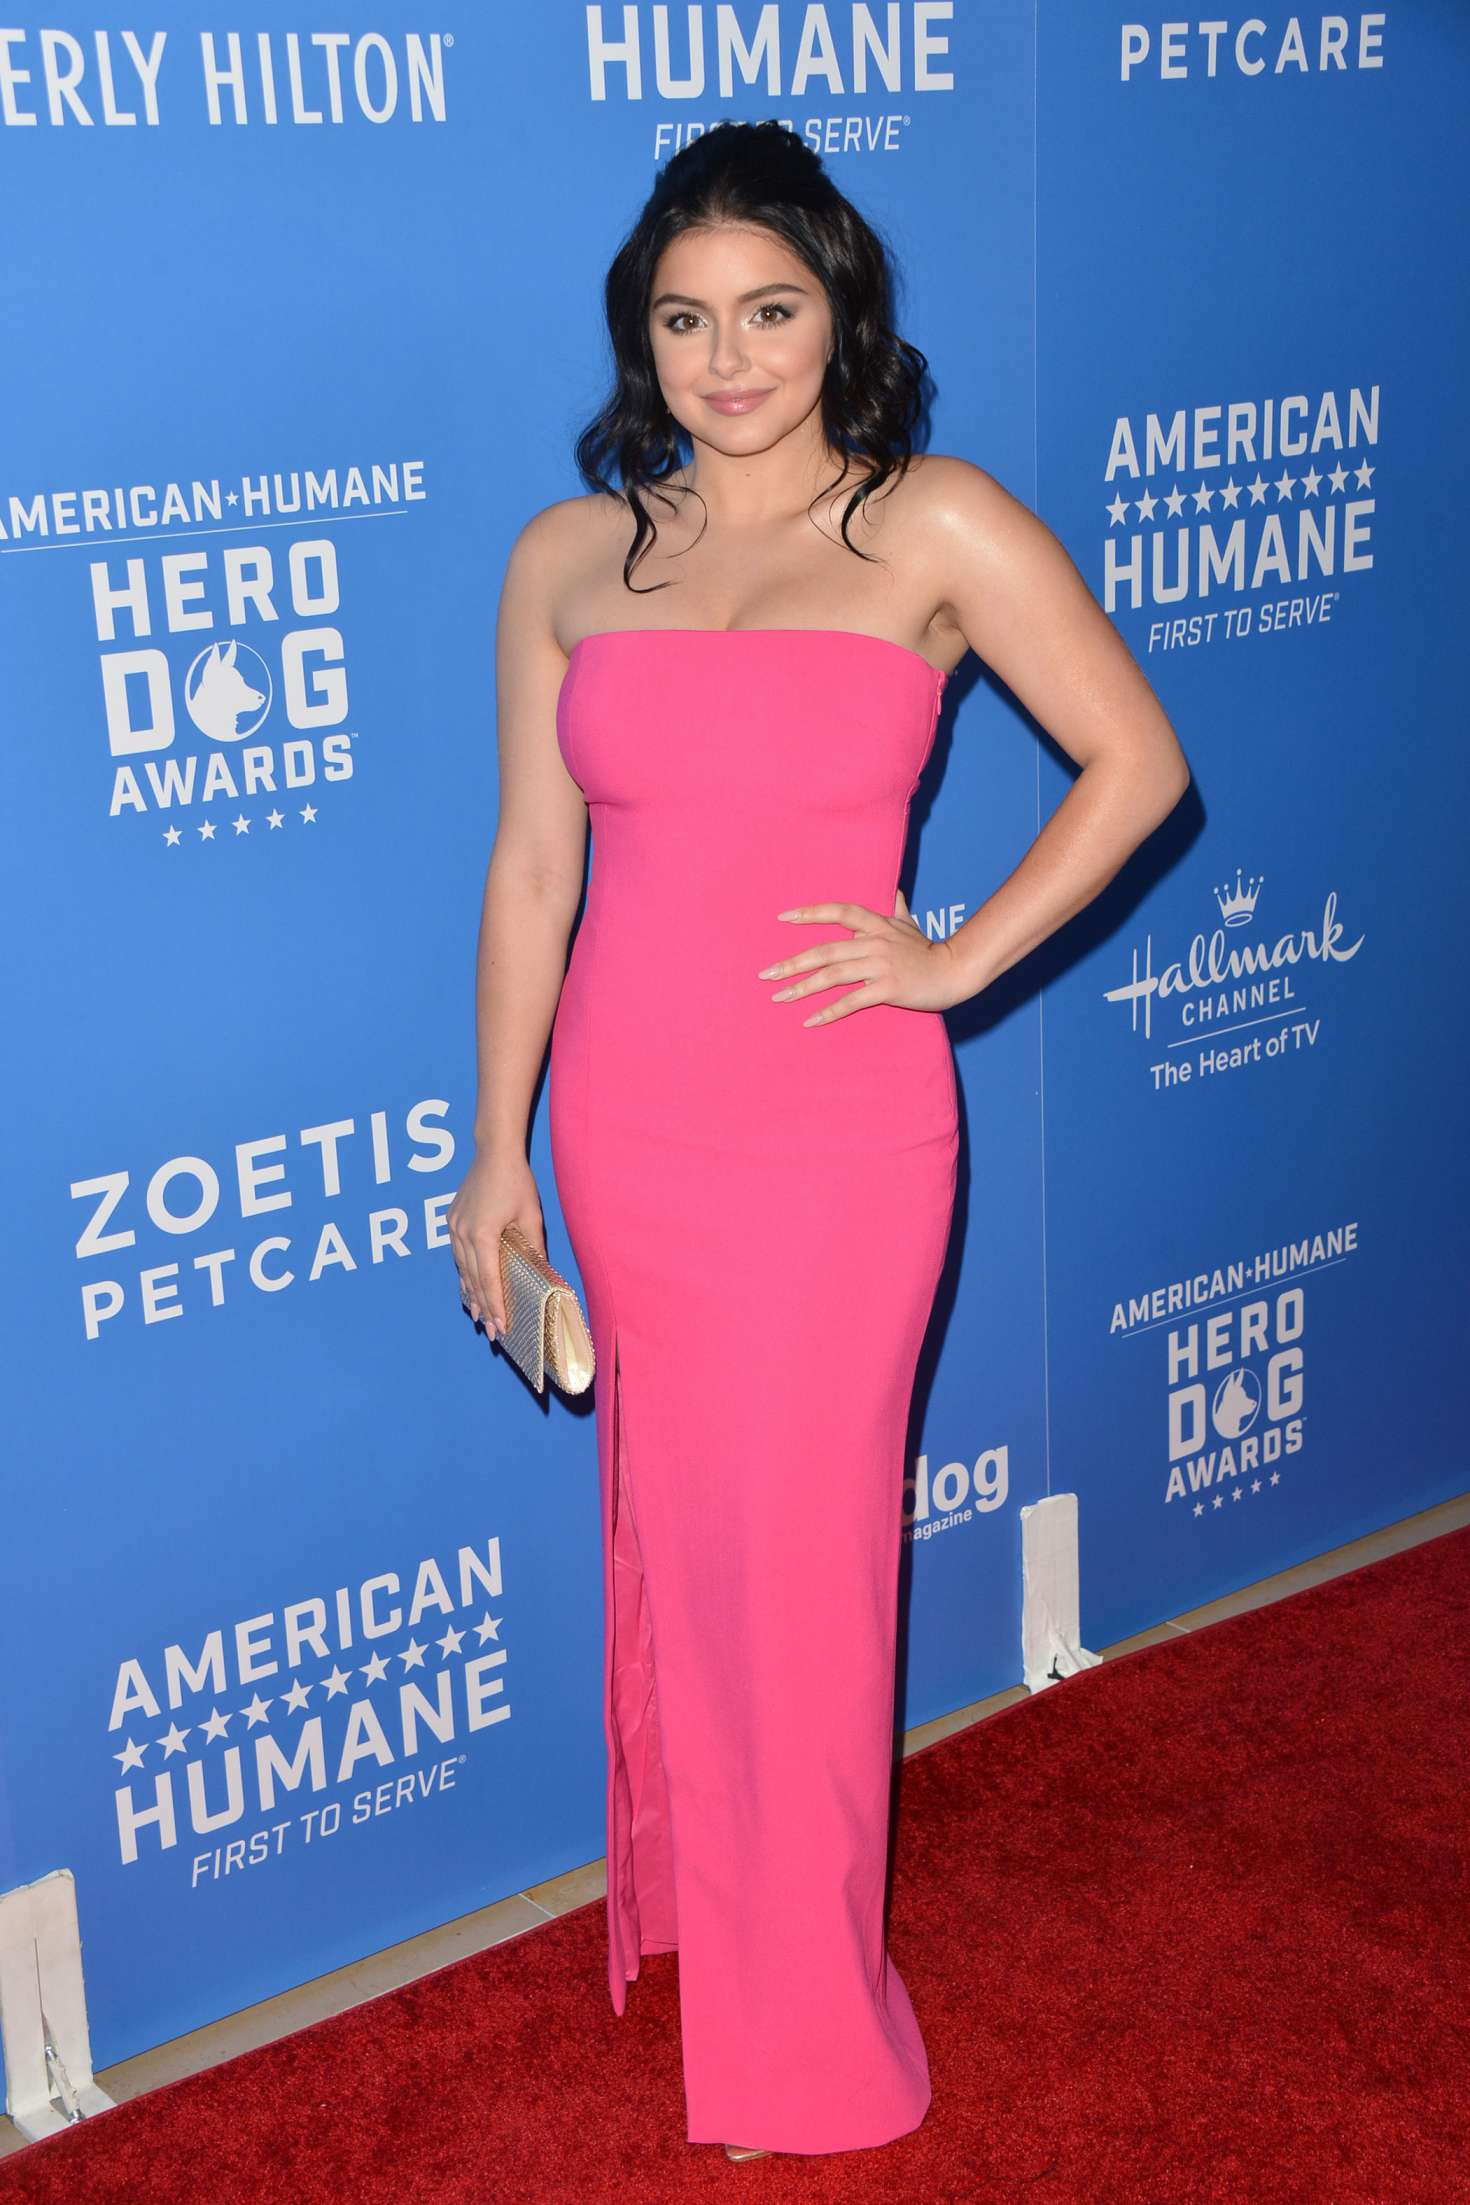 Ariel Winter - 2018 American Humane Hero Dog Awards in LA